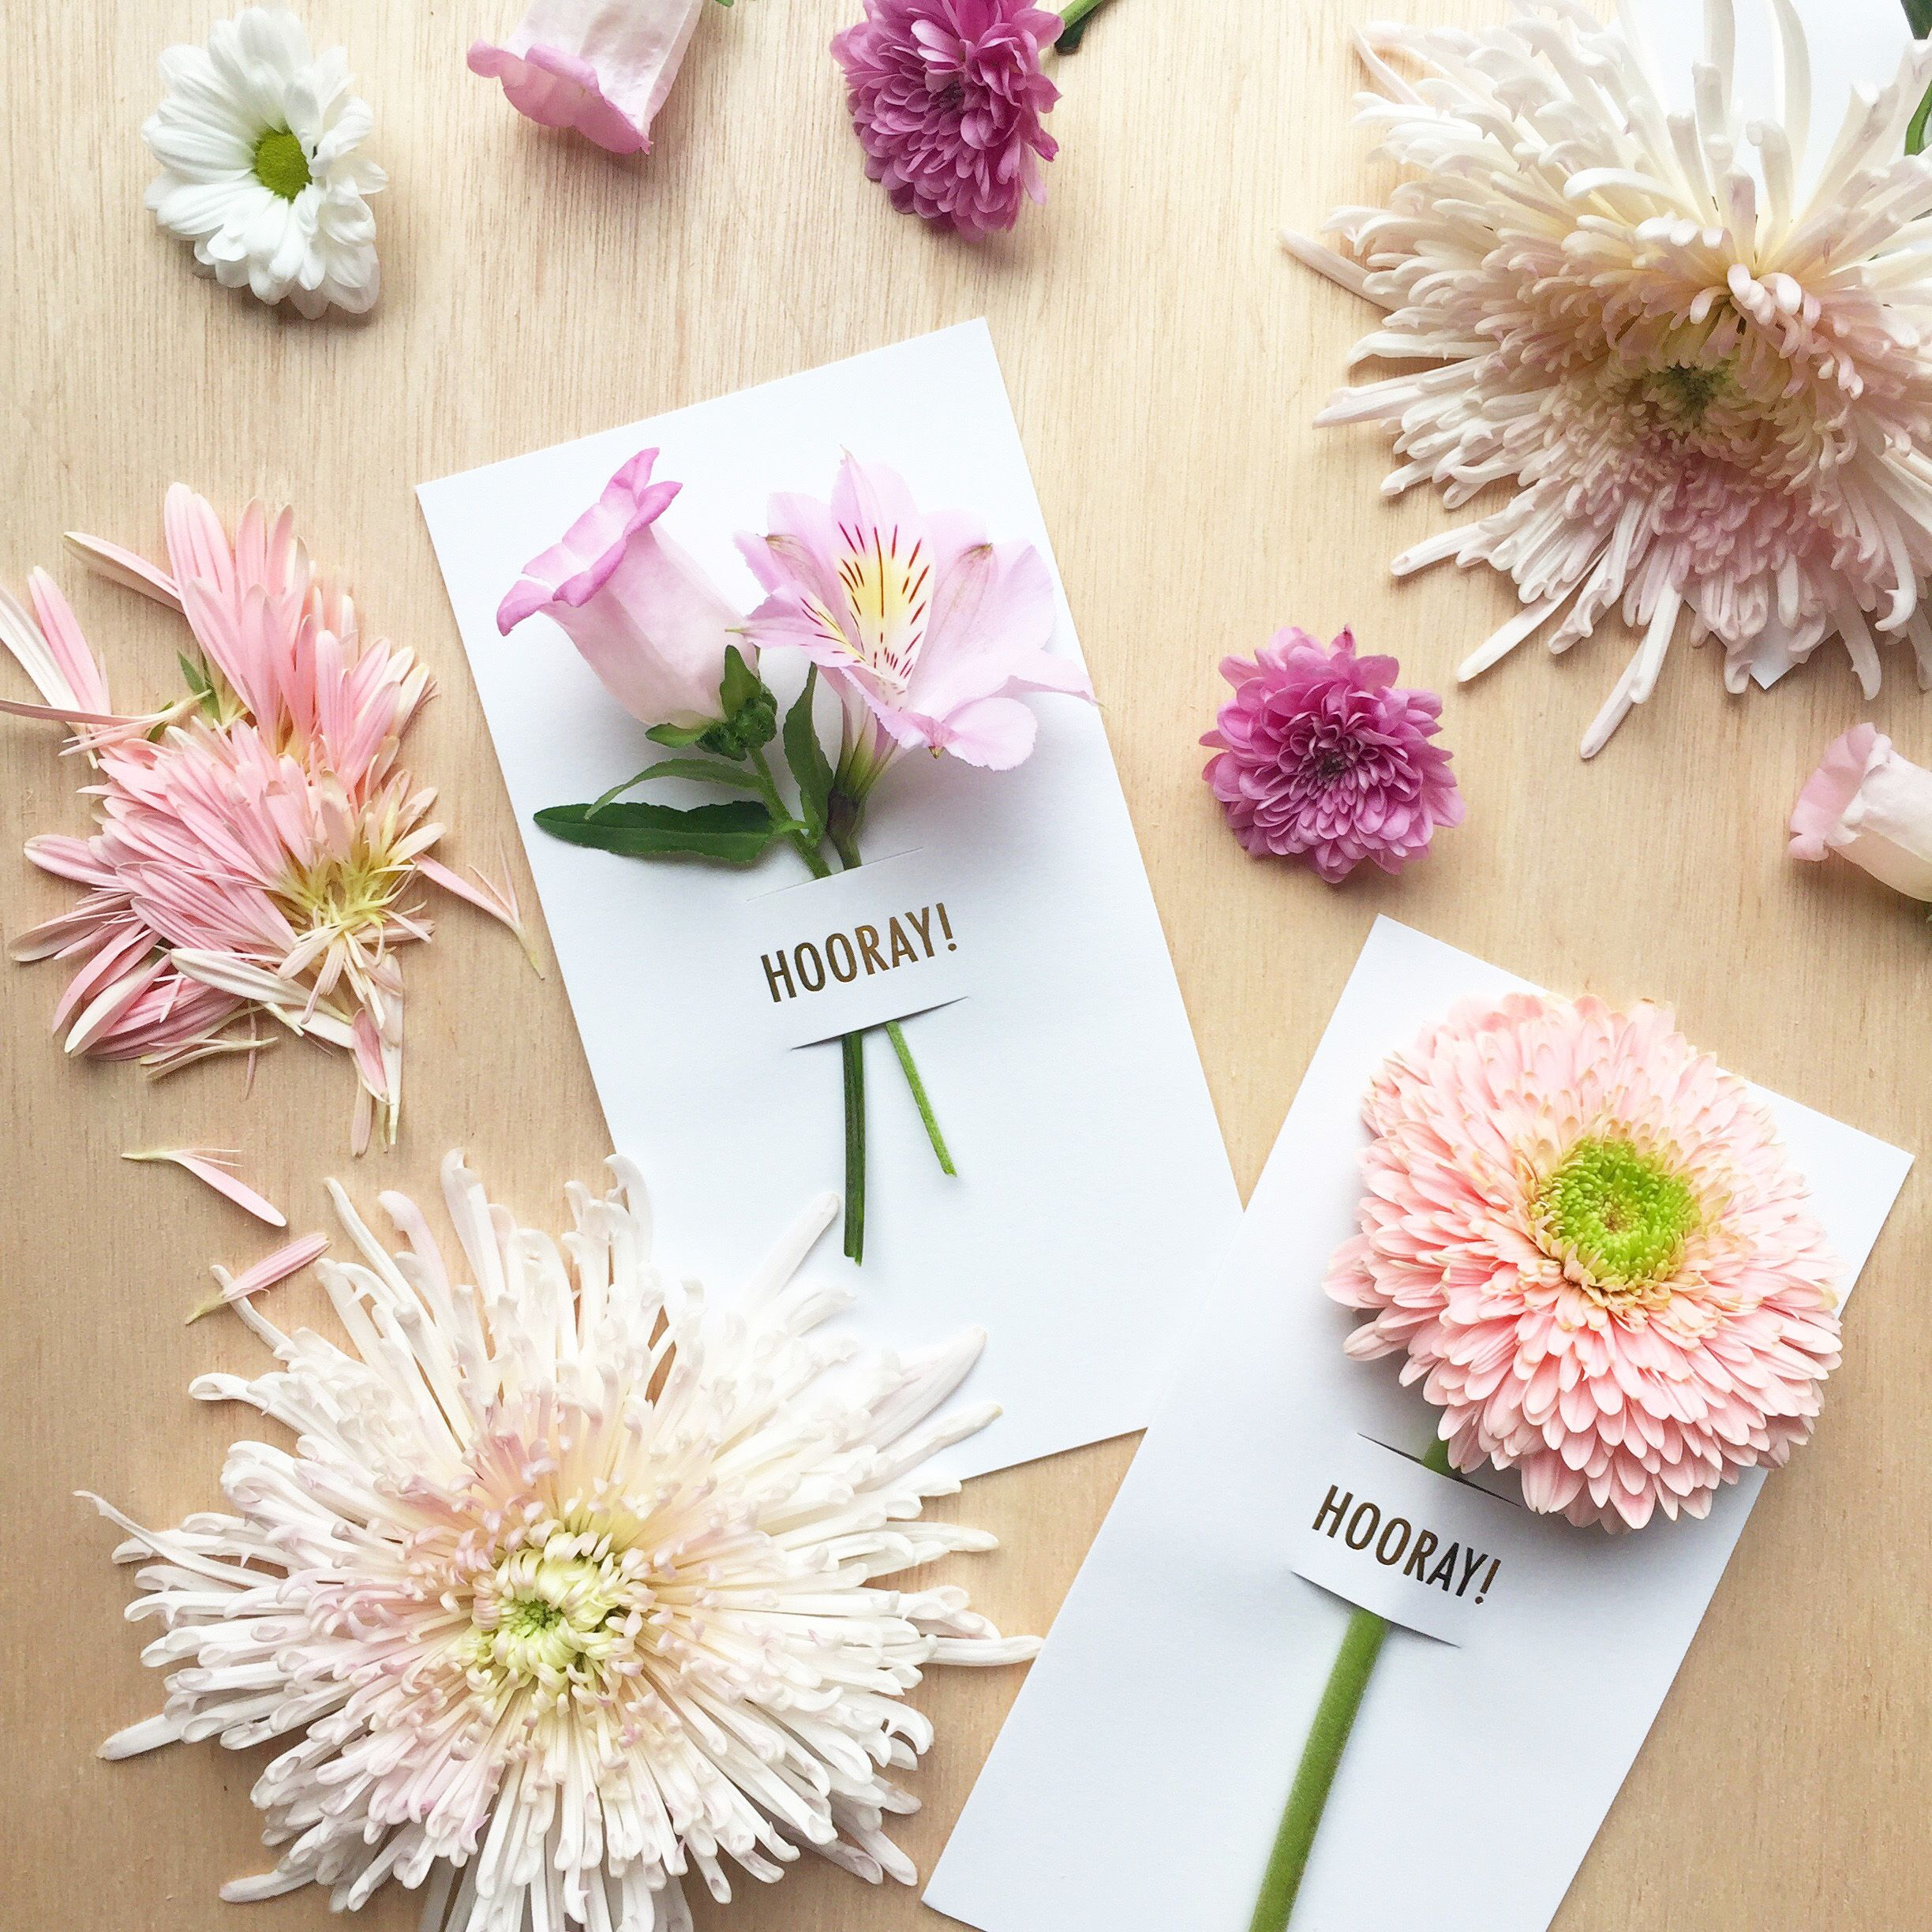 hooray flower notes